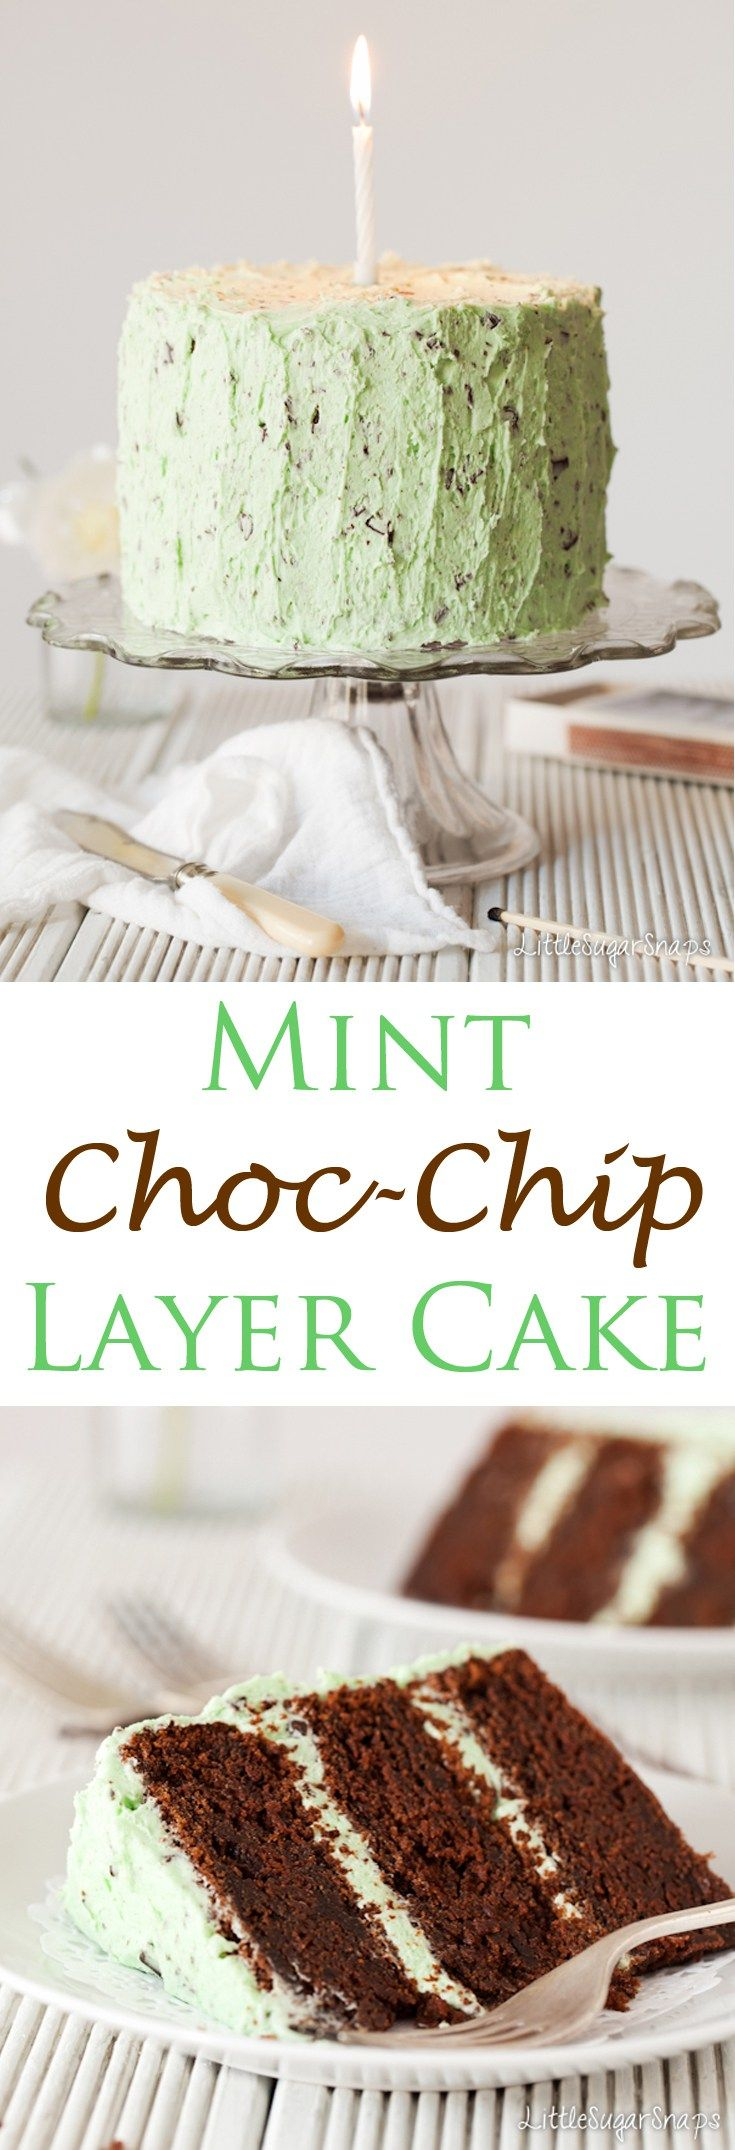 Mint Choc Chip Cake: dark & fudgy layers of chocolate cake hidden beneath minty, green, chocolate flecked buttercream. Think of Mint Choc Chip ice cream turned into a layer cake. class=